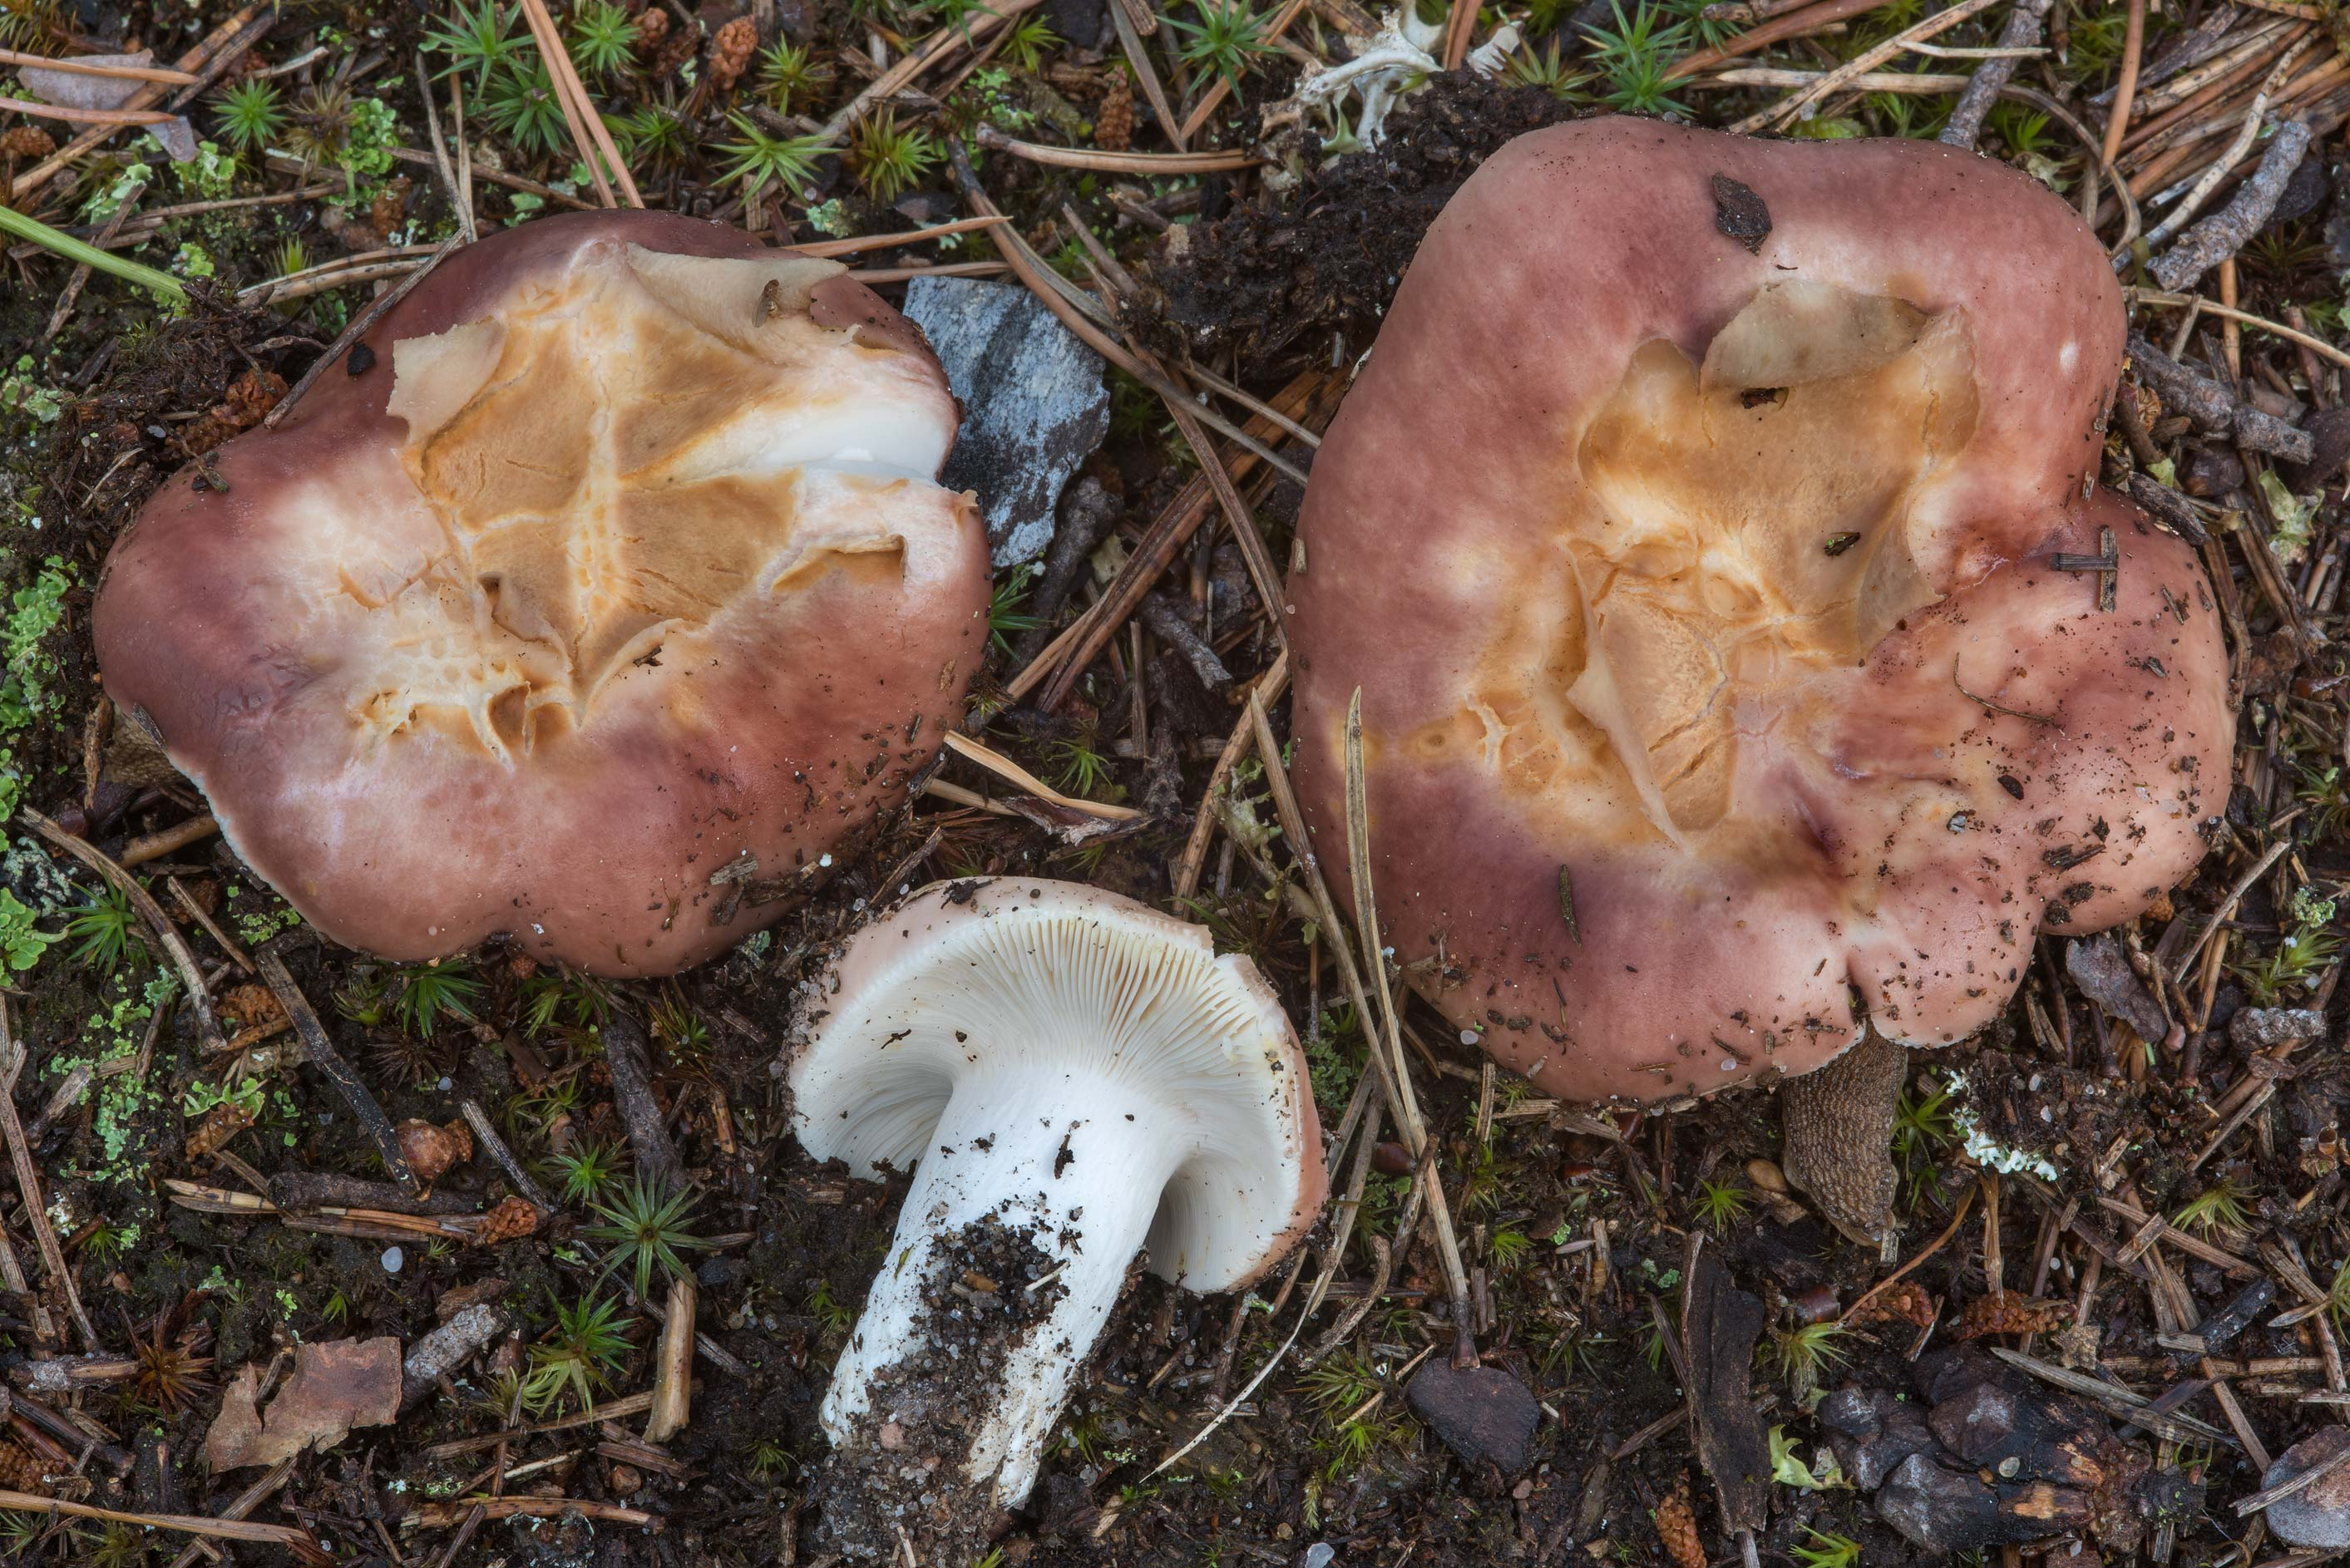 Bare teeth brittlegill mushrooms (Russula vesca...miles north from St.Petersburg. Russia